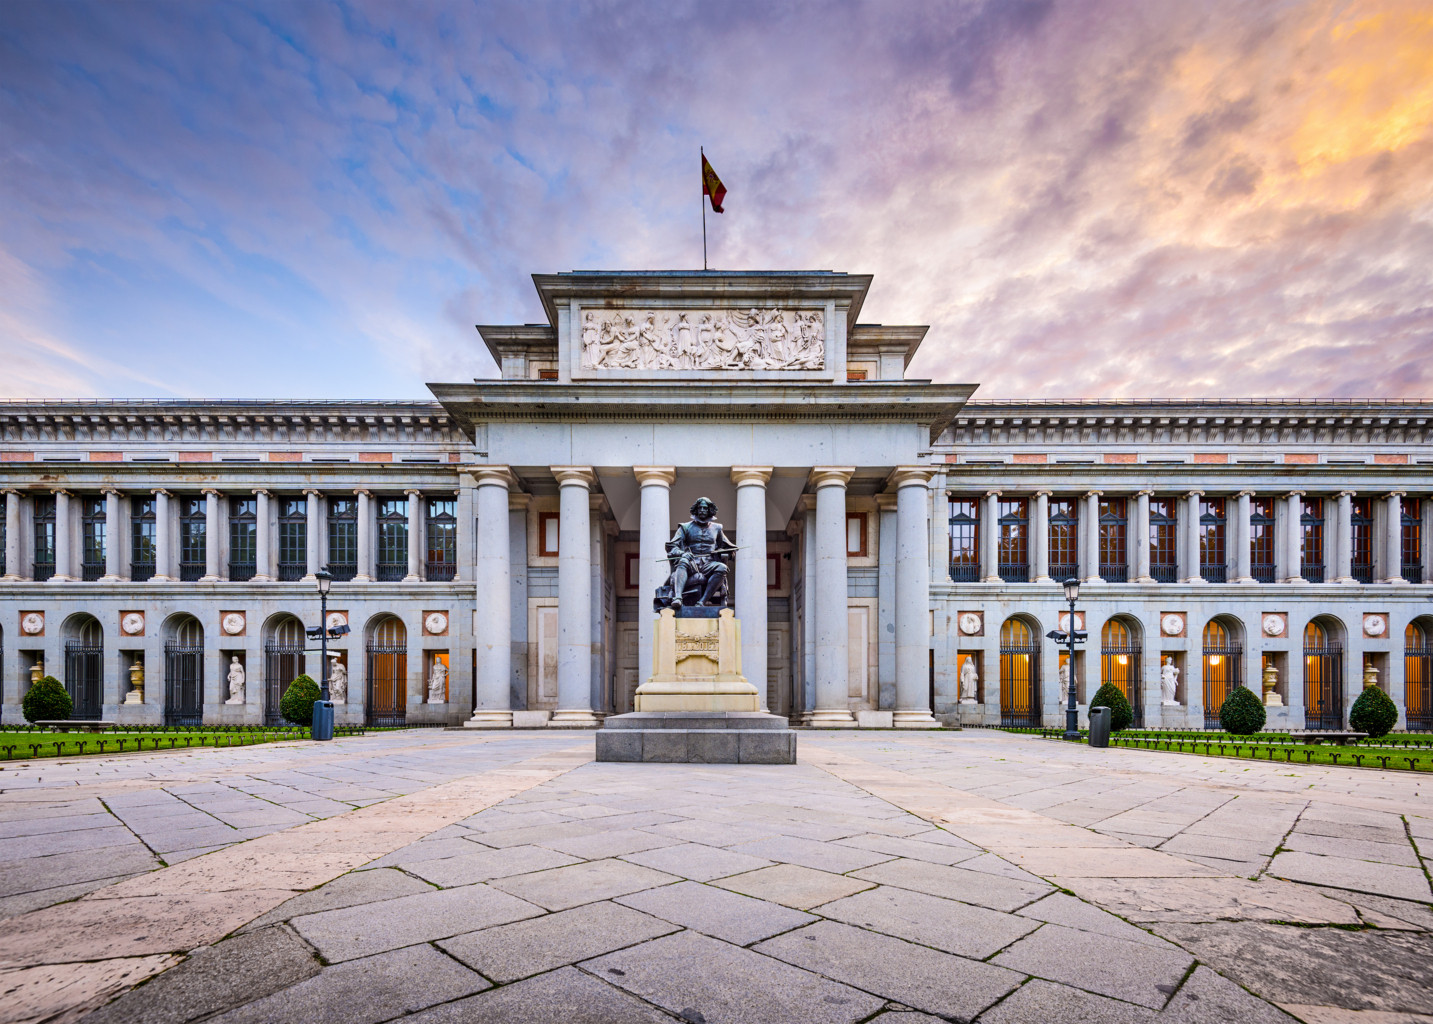 an analysis of the prado national museum in central madrid 344 reviews of museo nacional del prado love art museum prado is the biggest museum in madrid we paid the 3660 and bought the national museum pass.